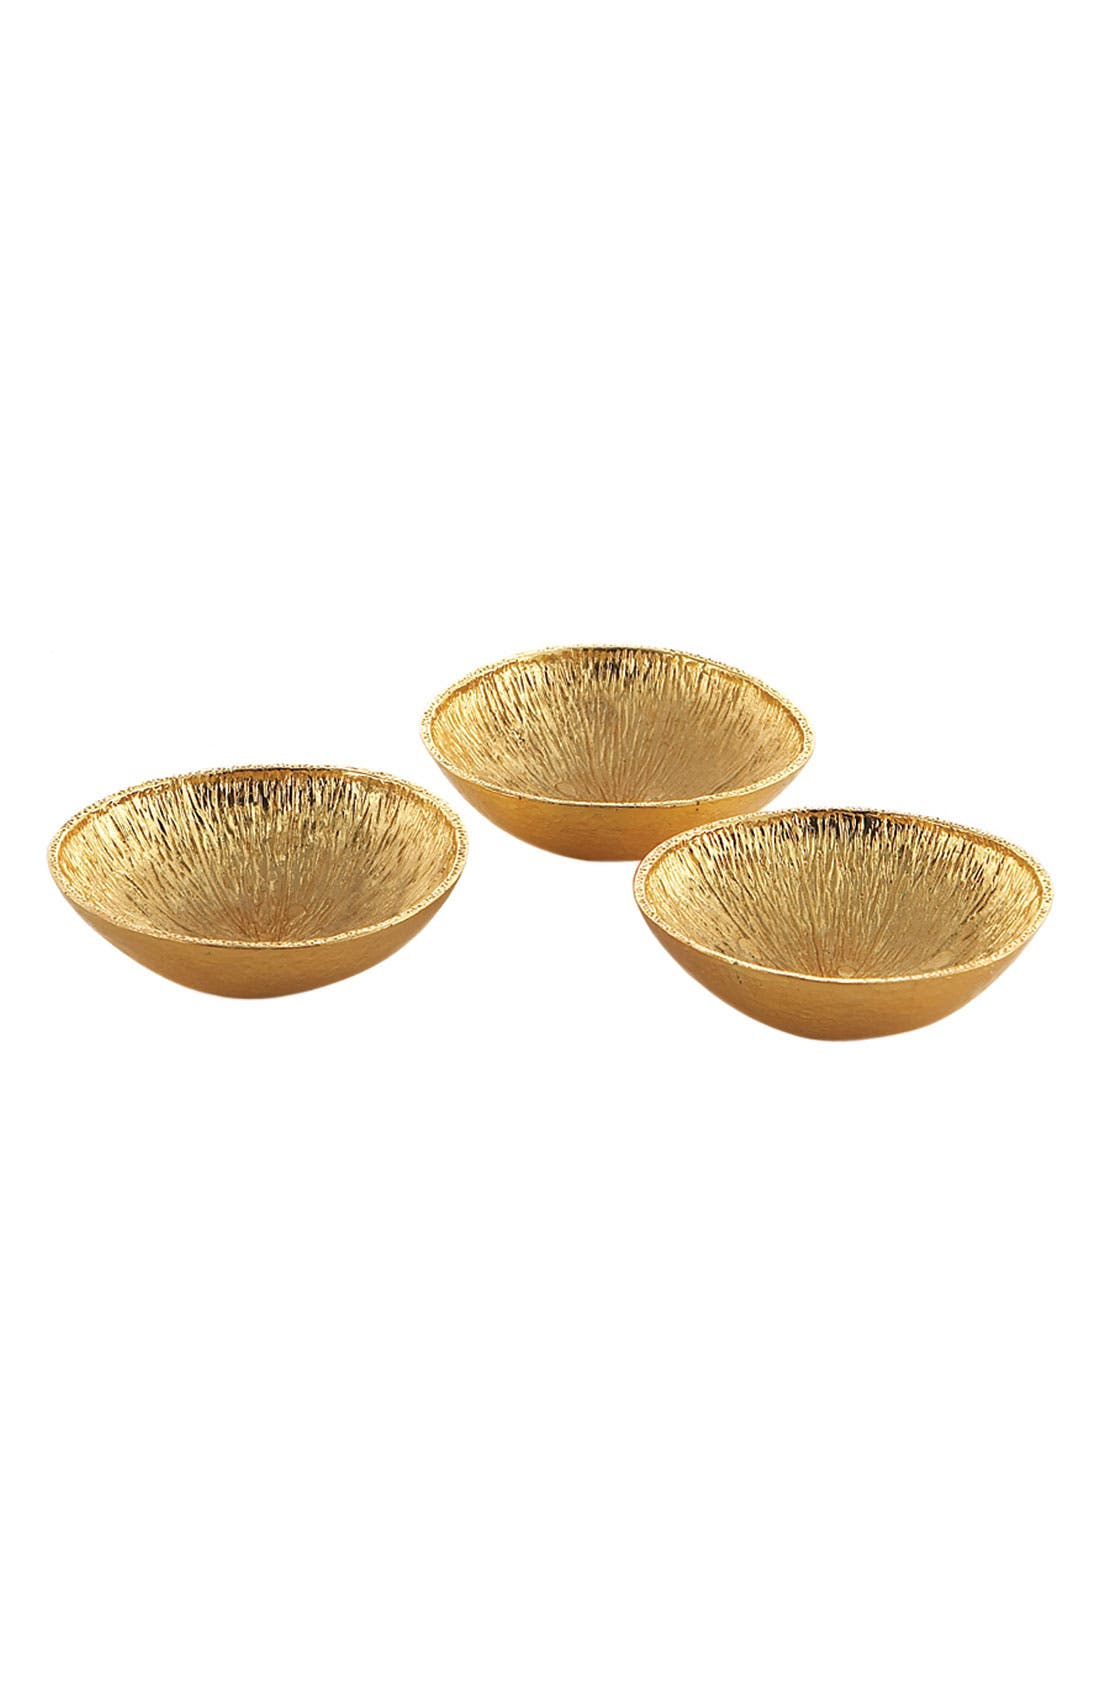 Main Image - Michael Aram 'Lemonwood' Mini Dish Set